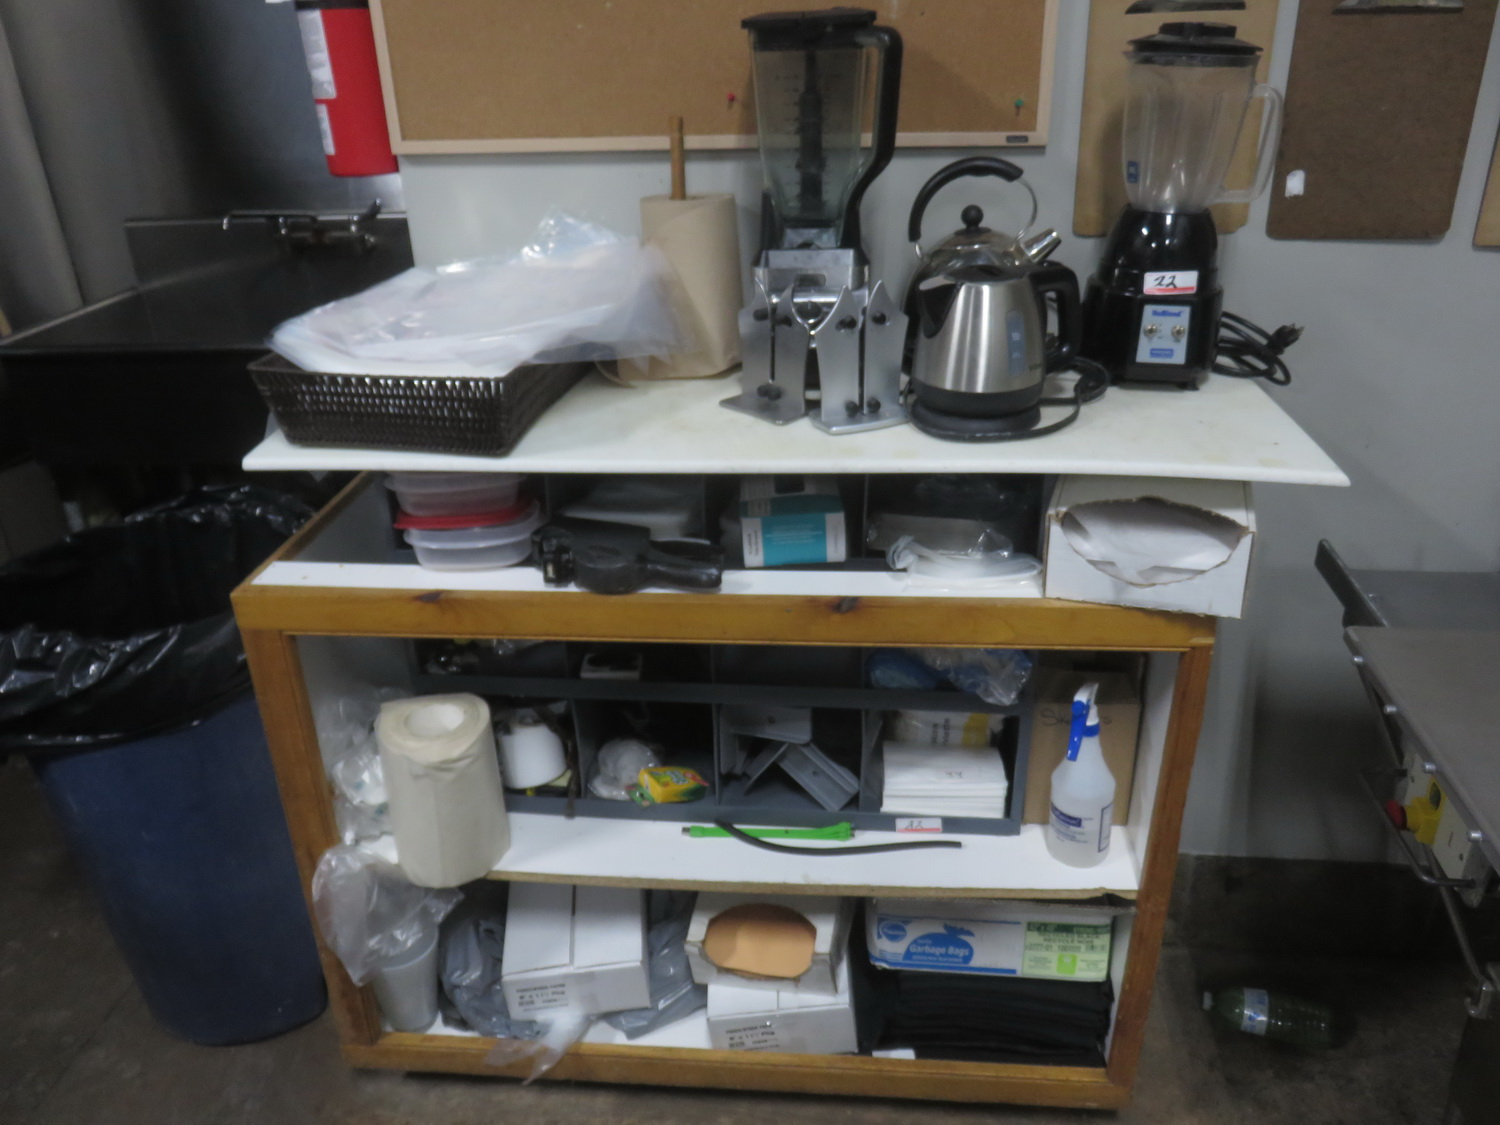 LOT - BLENDERS, COFFEE MACHINES, GARBAGE BAGS, & ACCESSORIES W/ SHELF